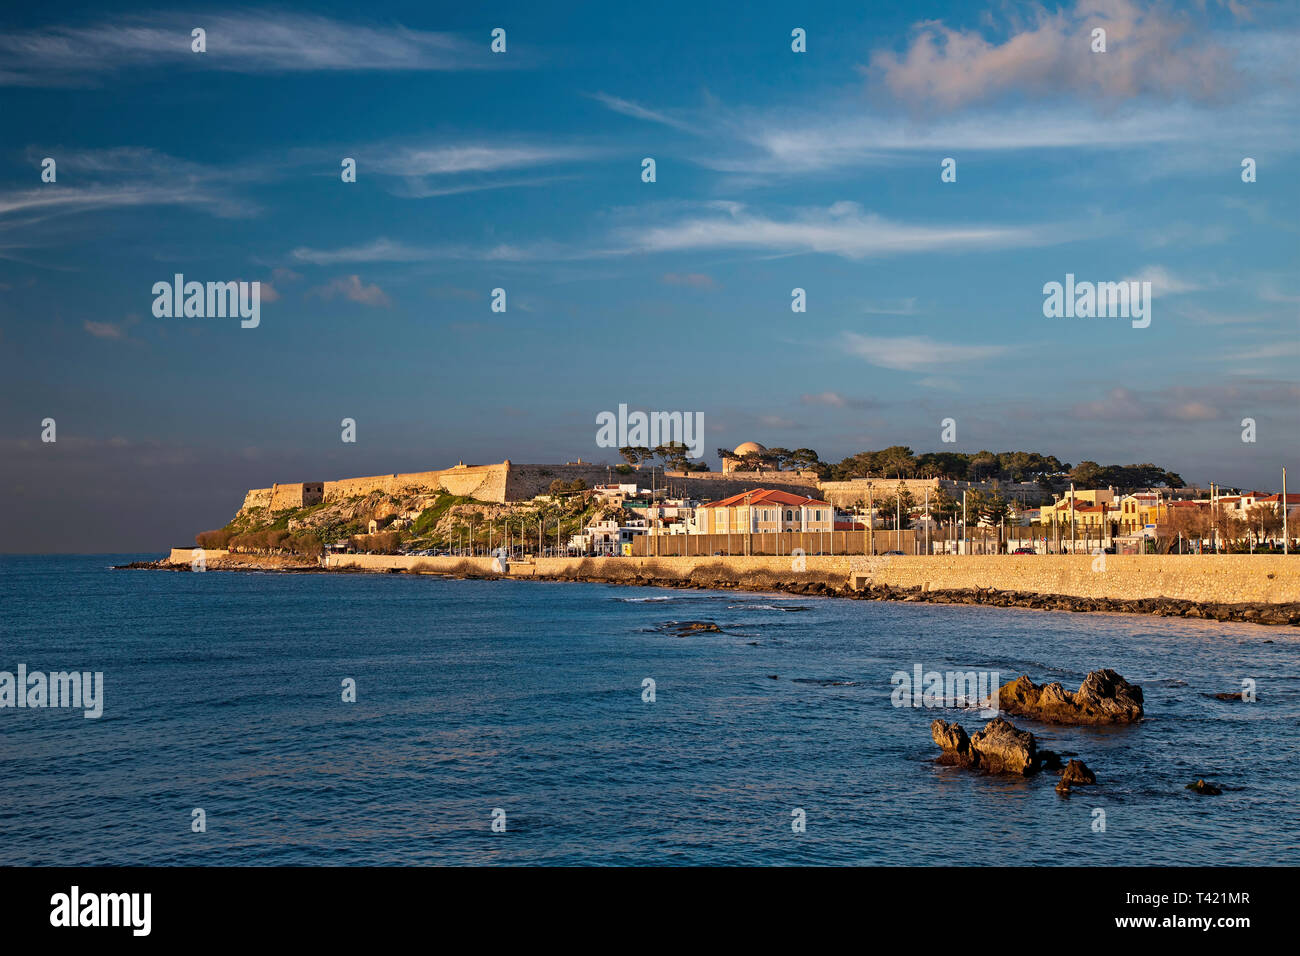 View of Fortezza, the castle of Rethimno town, late in the afternoon. Crete island, Greece. Stock Photo